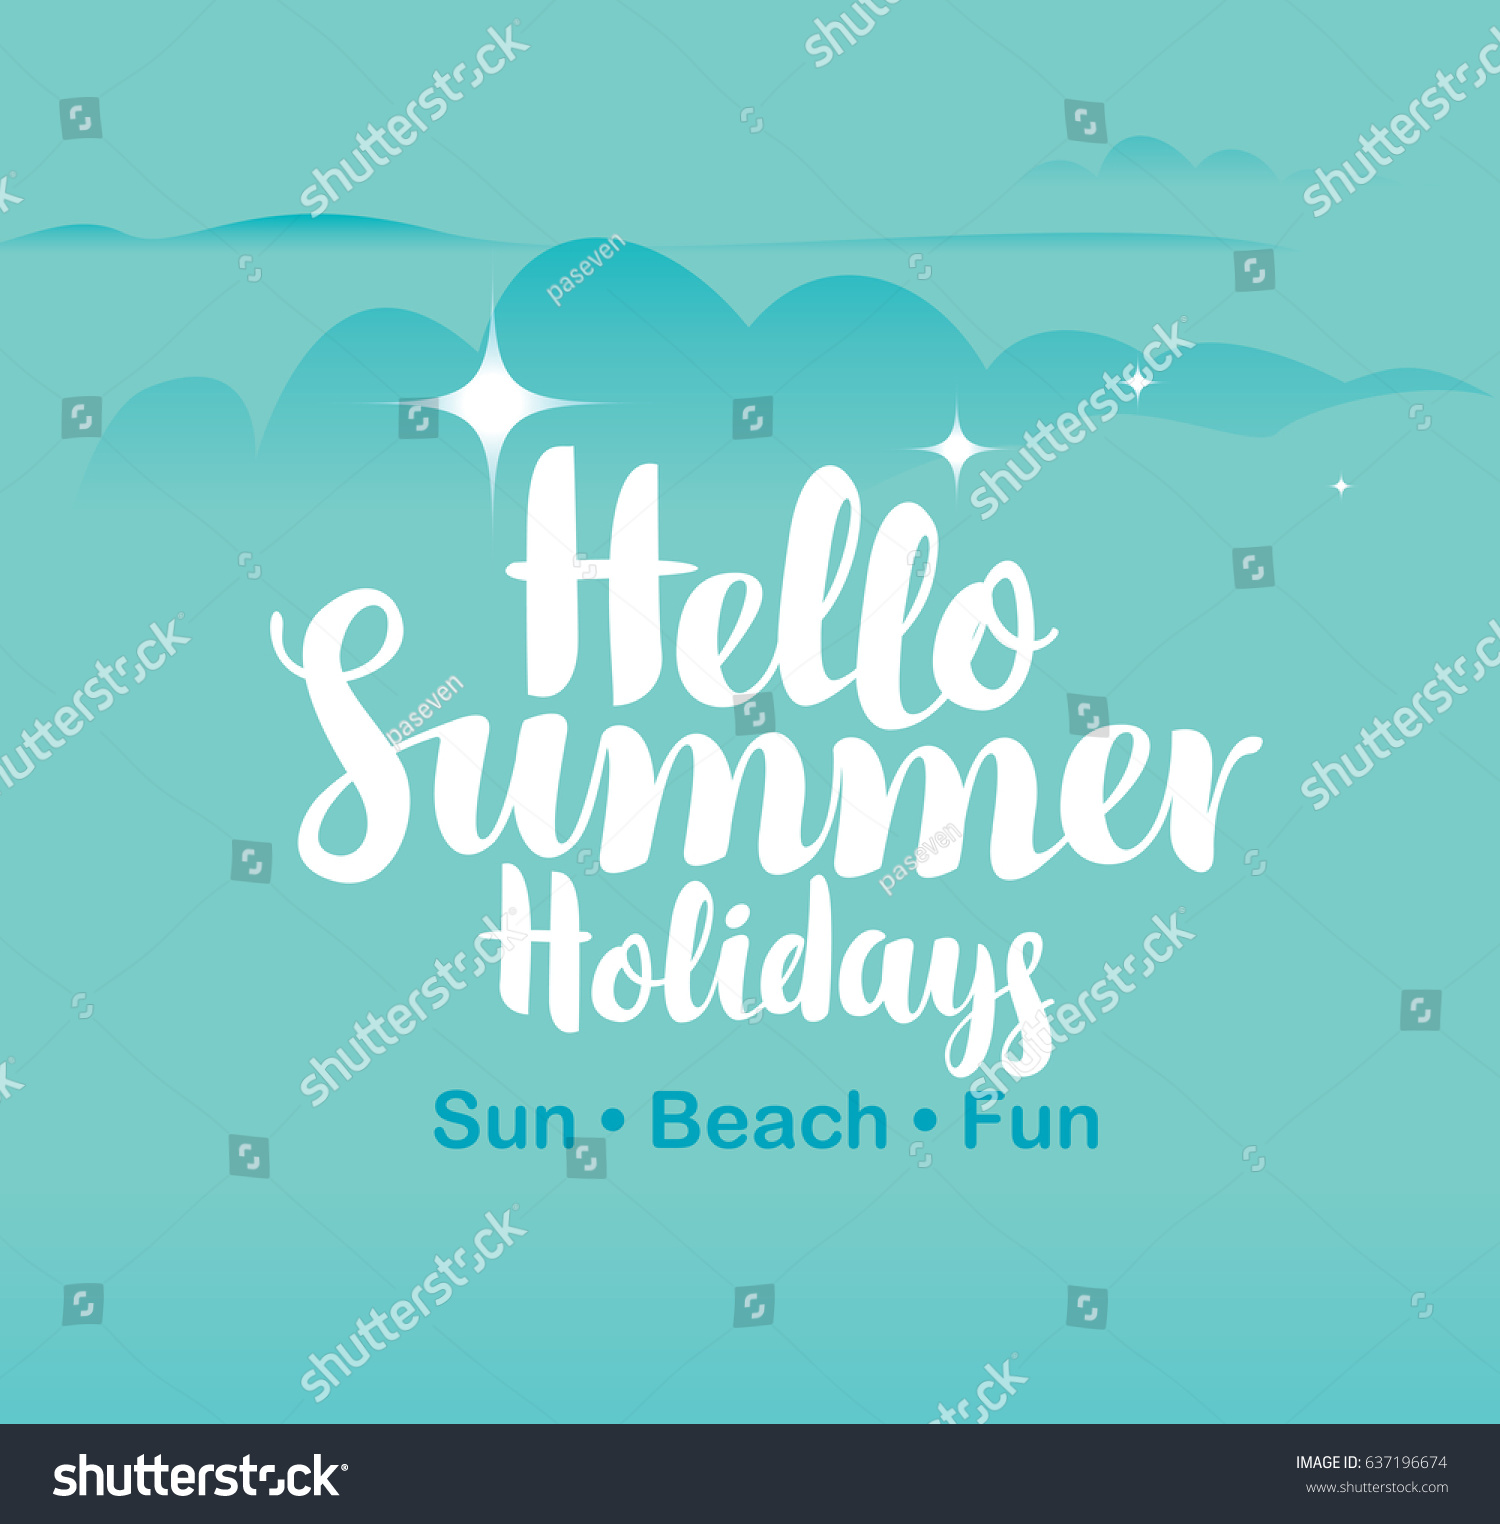 Vector Travel Banner With Sky, Clouds, Stars, And The Words Hello Summer  Holidays